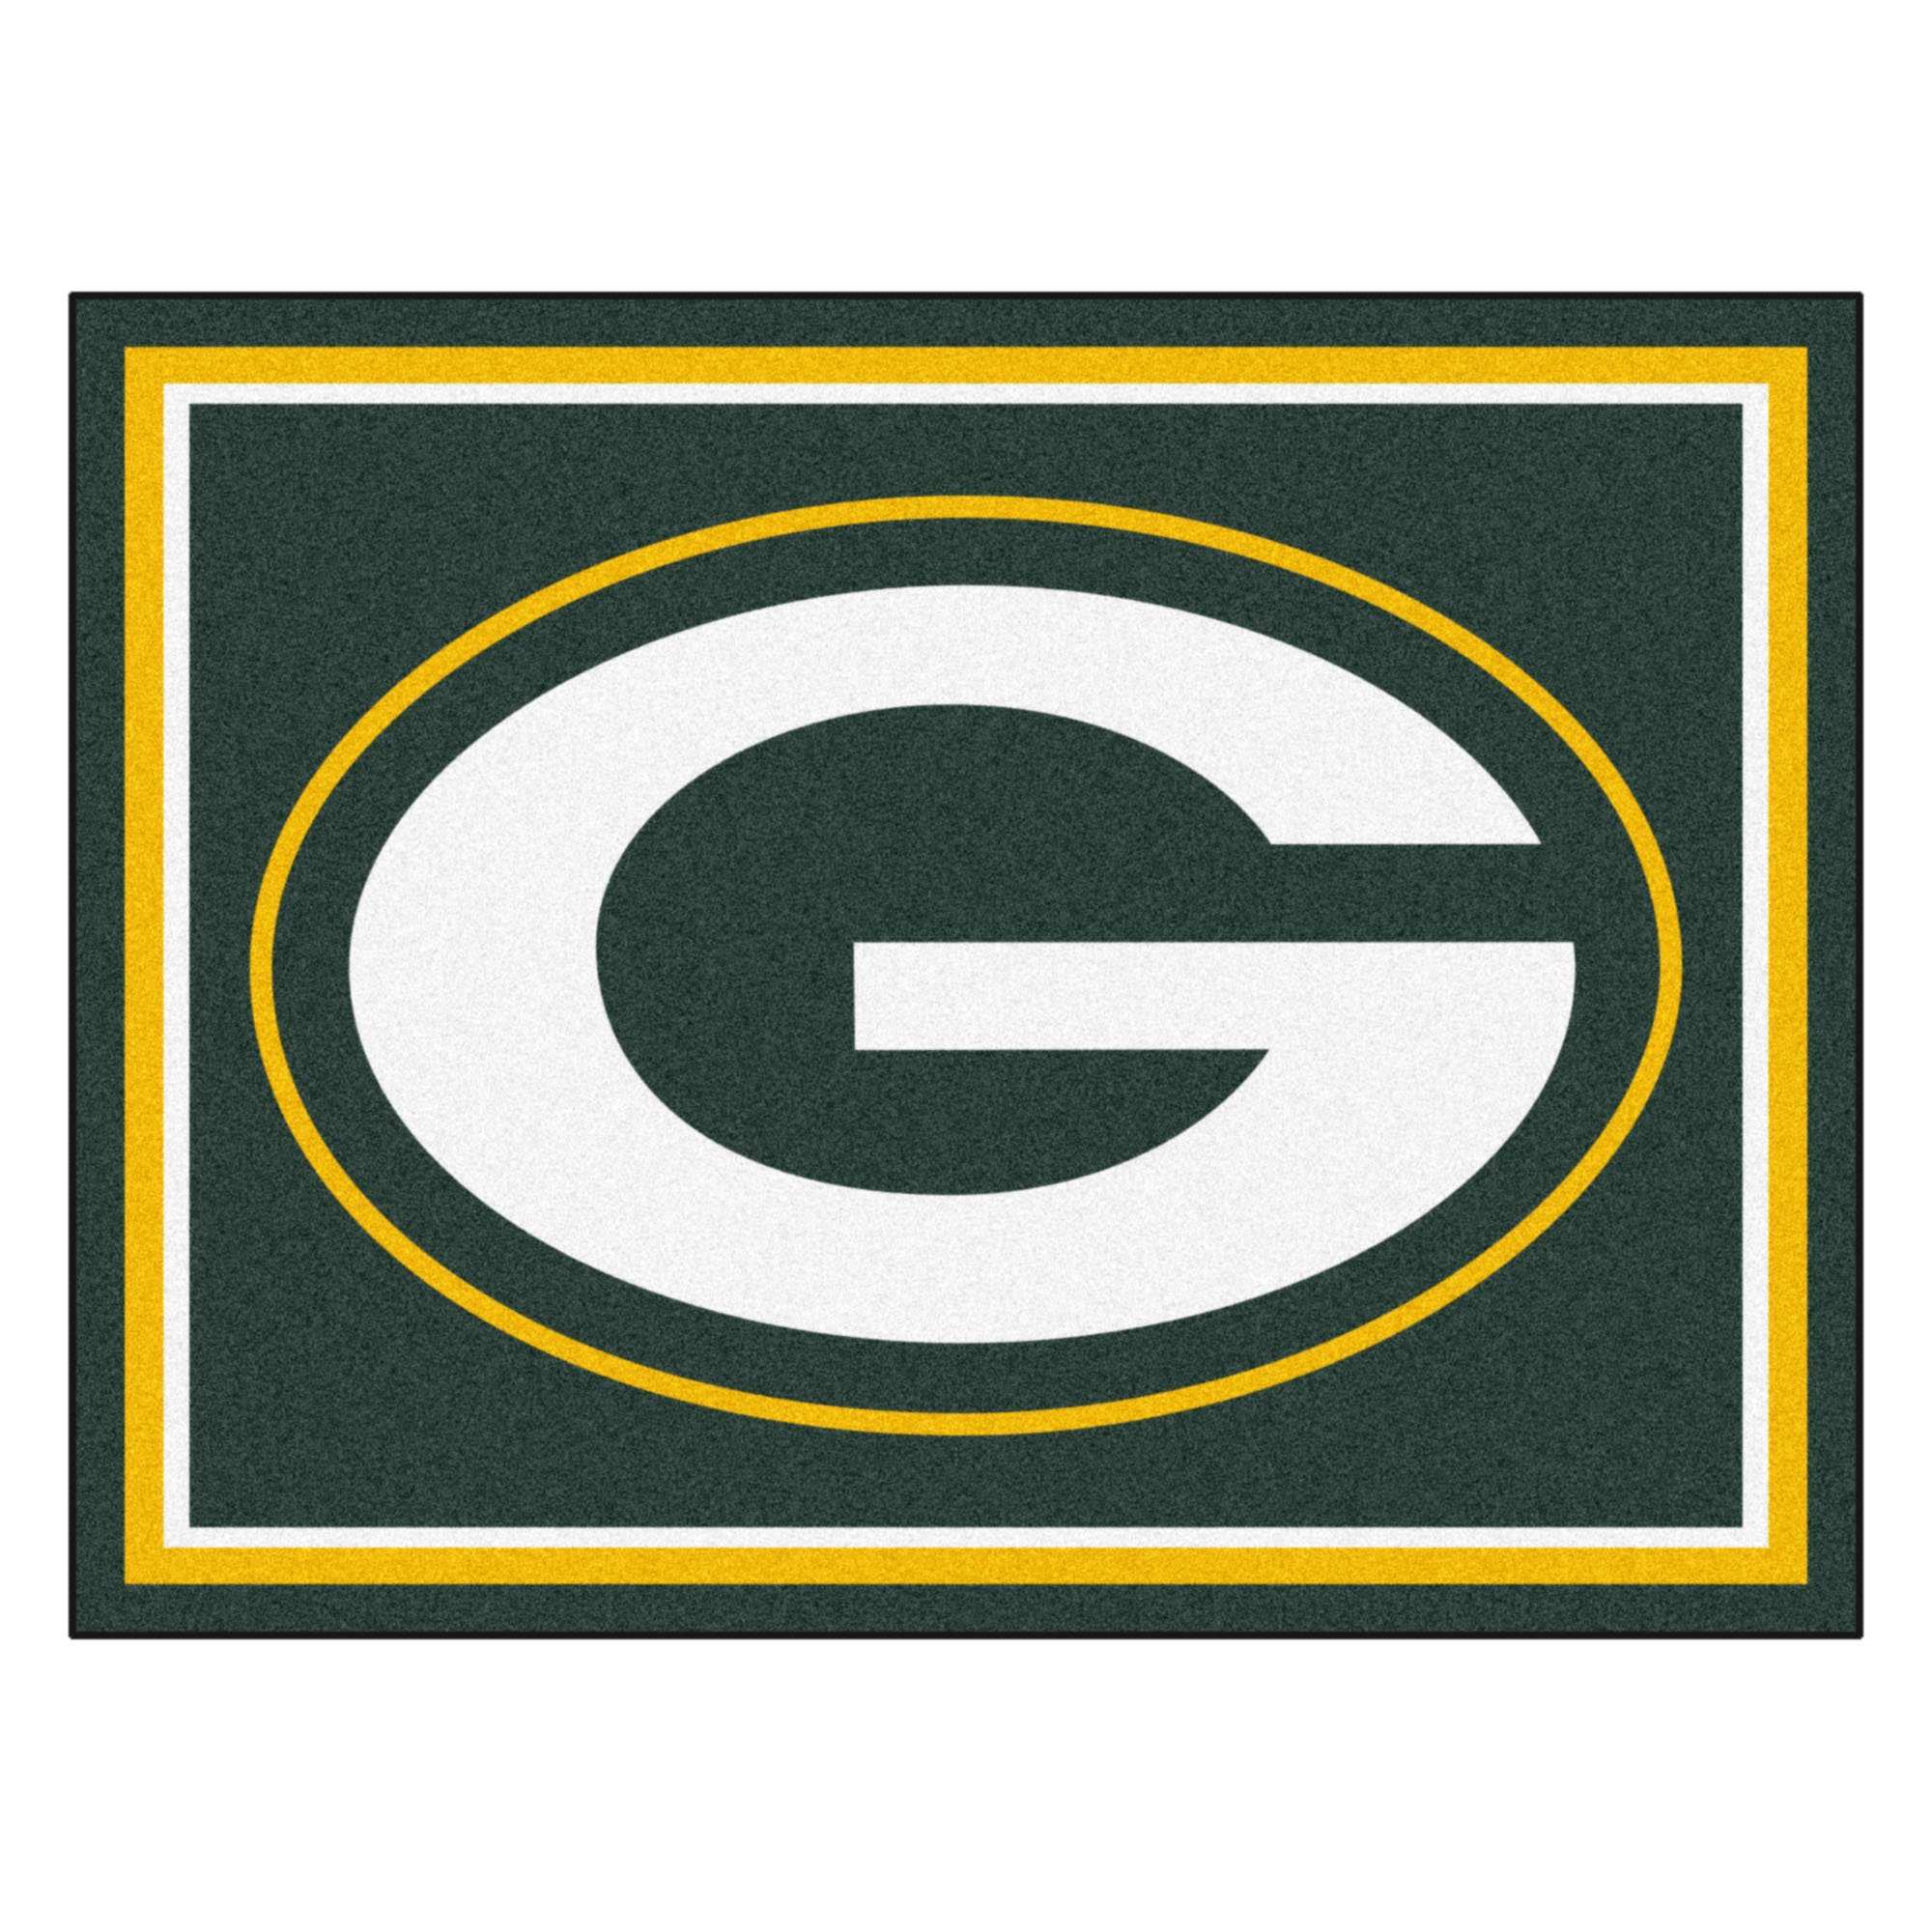 FANMATS 17482 NFL Green Bay Packers Rug